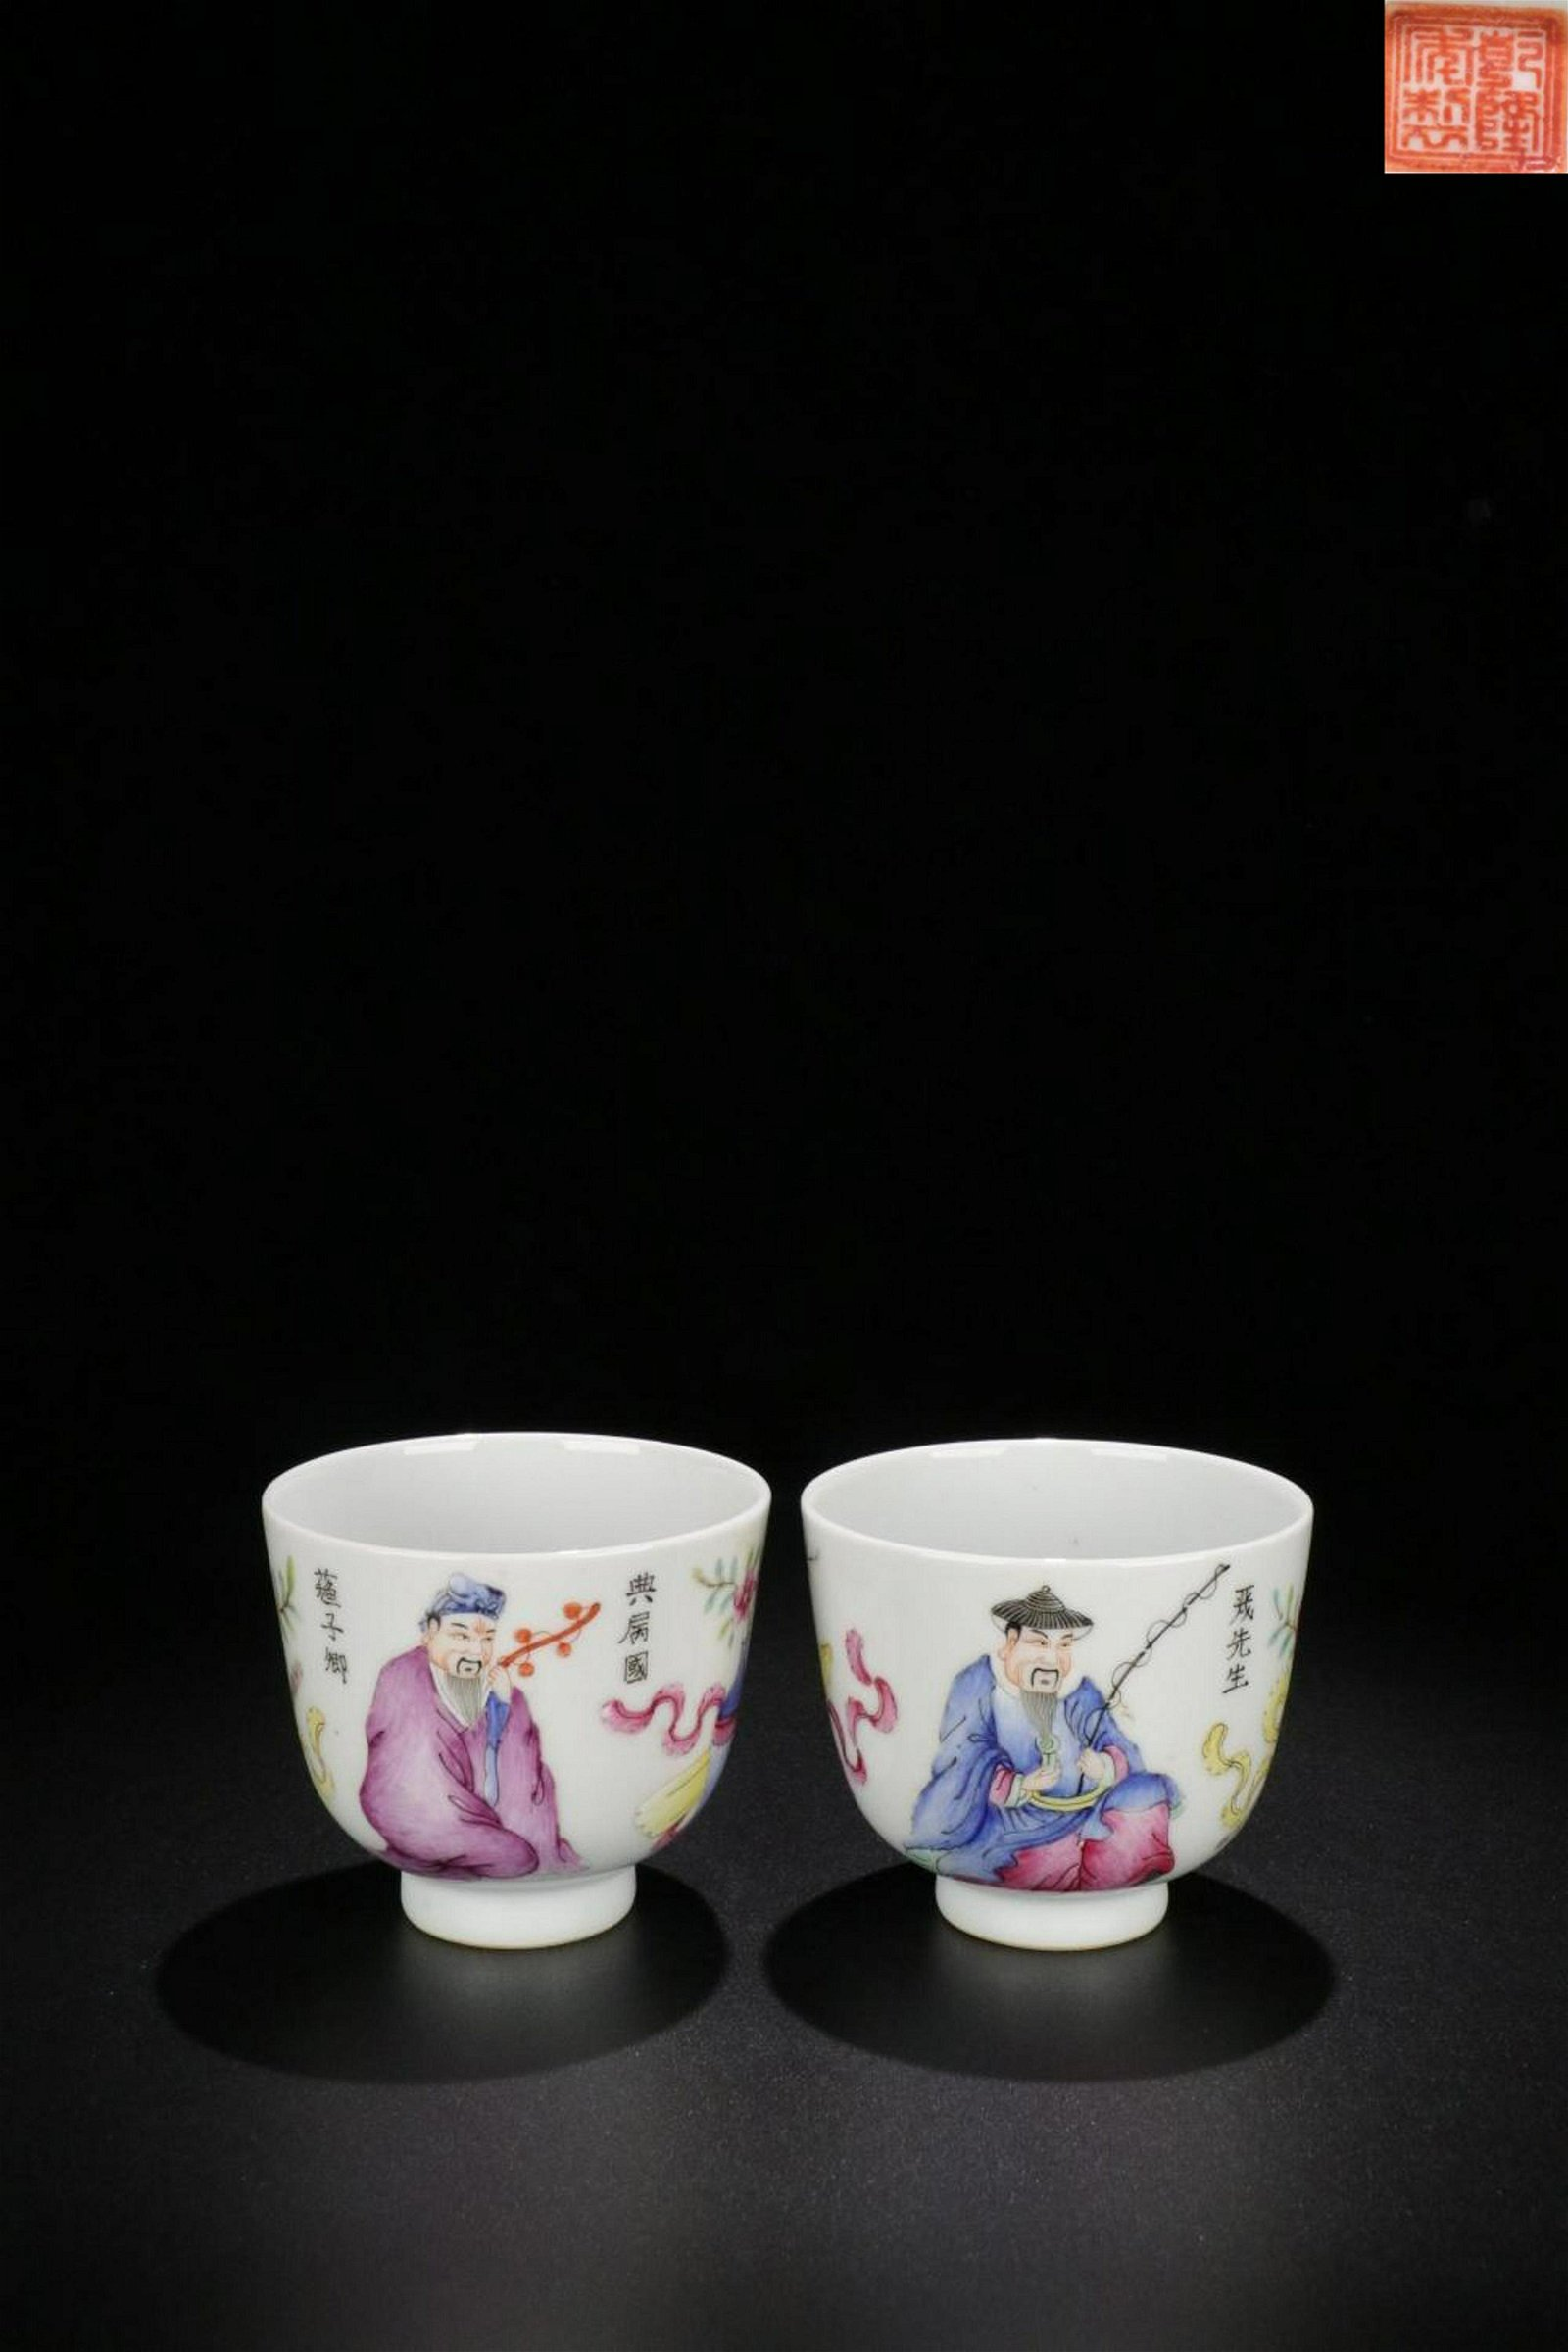 A PAIR OF FAMILLE ROSE CHARACTER STORY PATTERN CUPS